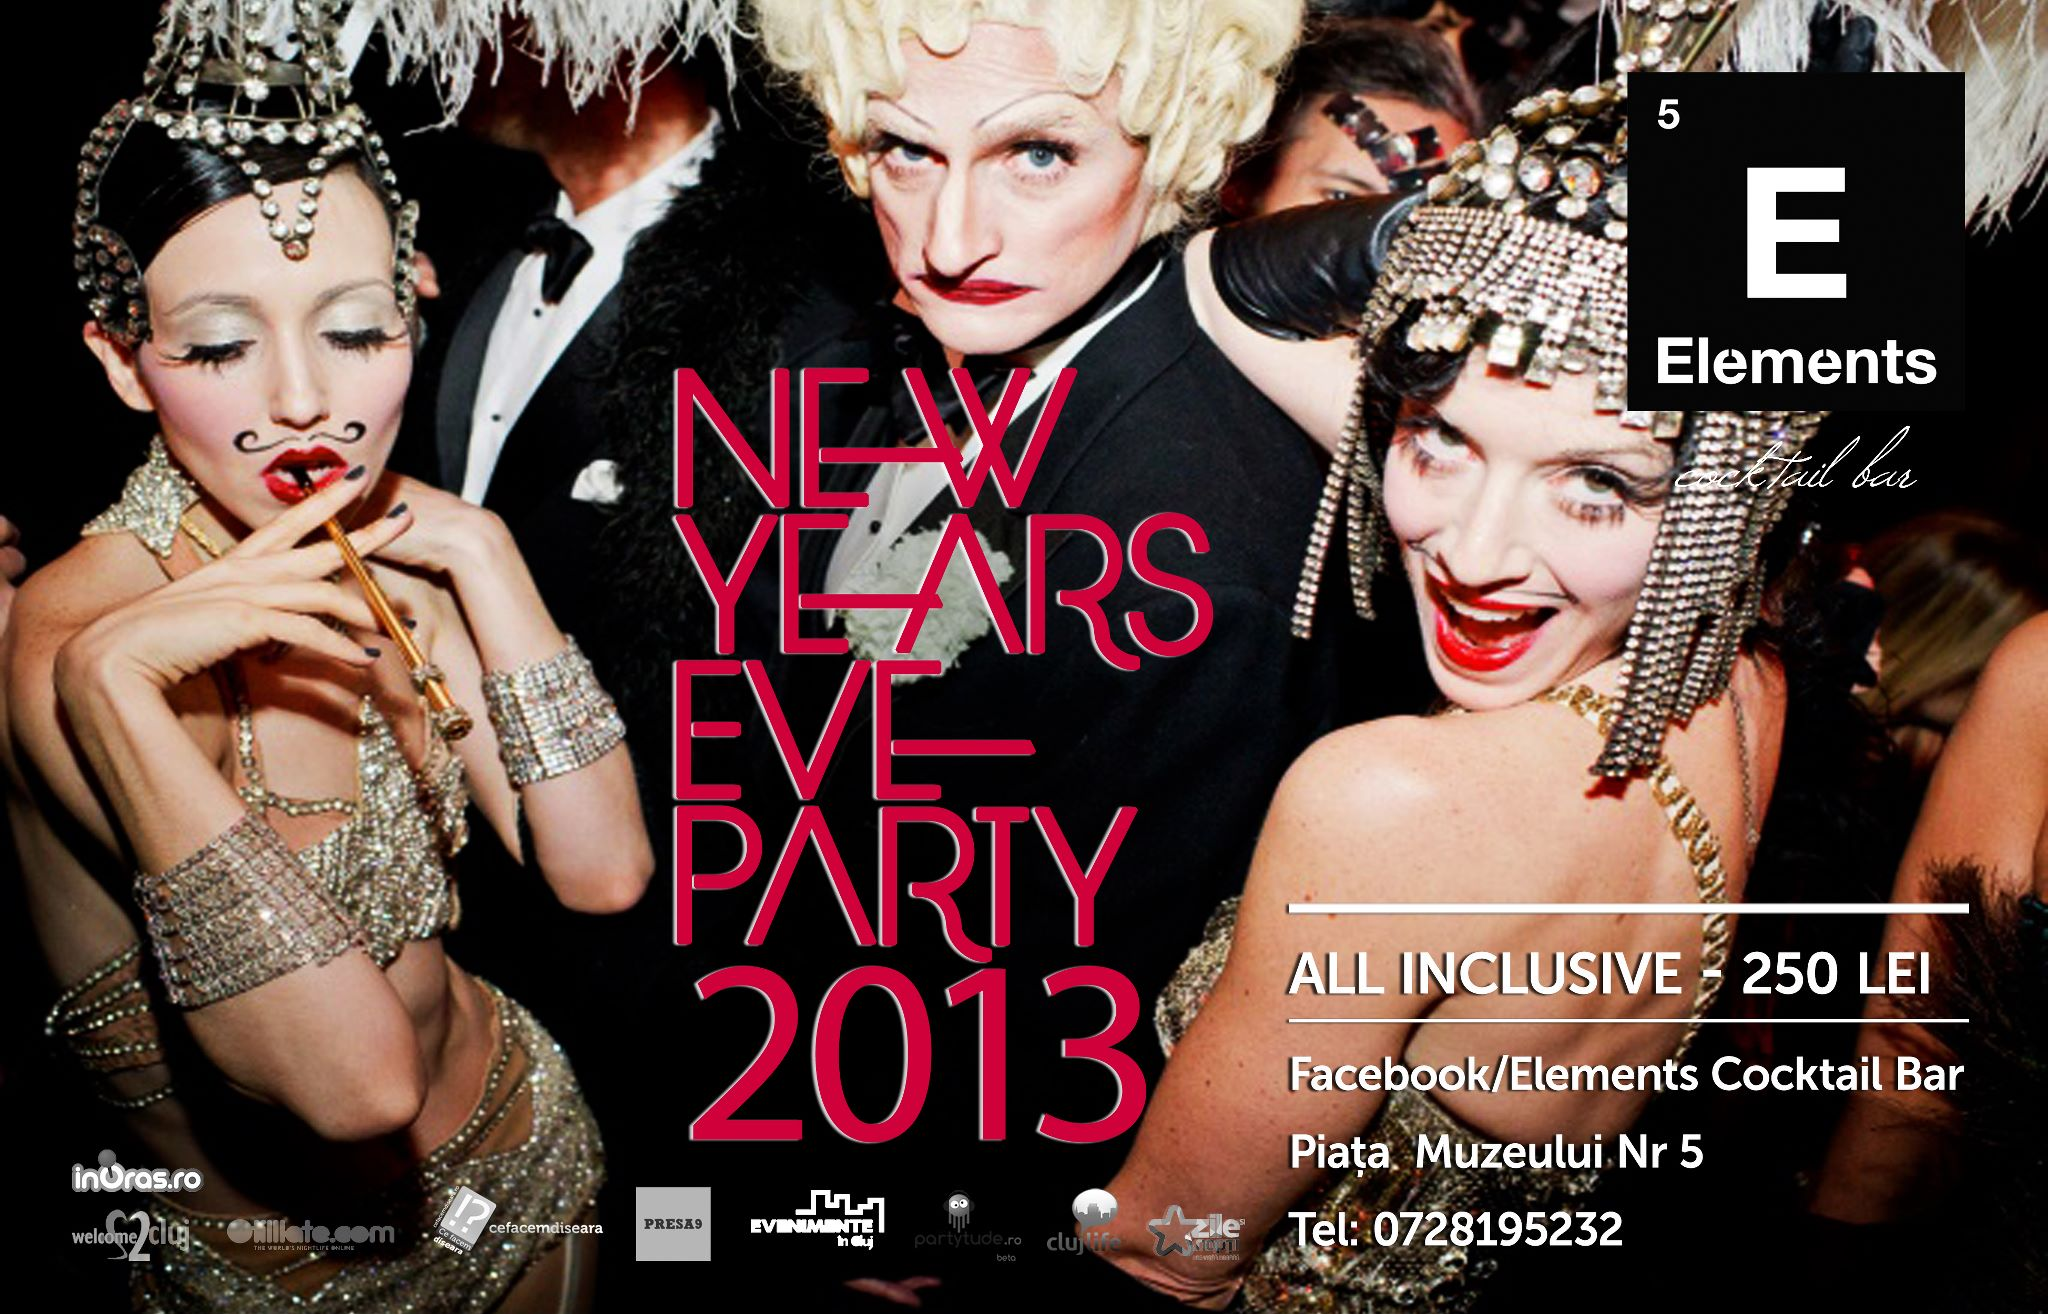 New Year's Eve Party @ Elements Cocktail Bar